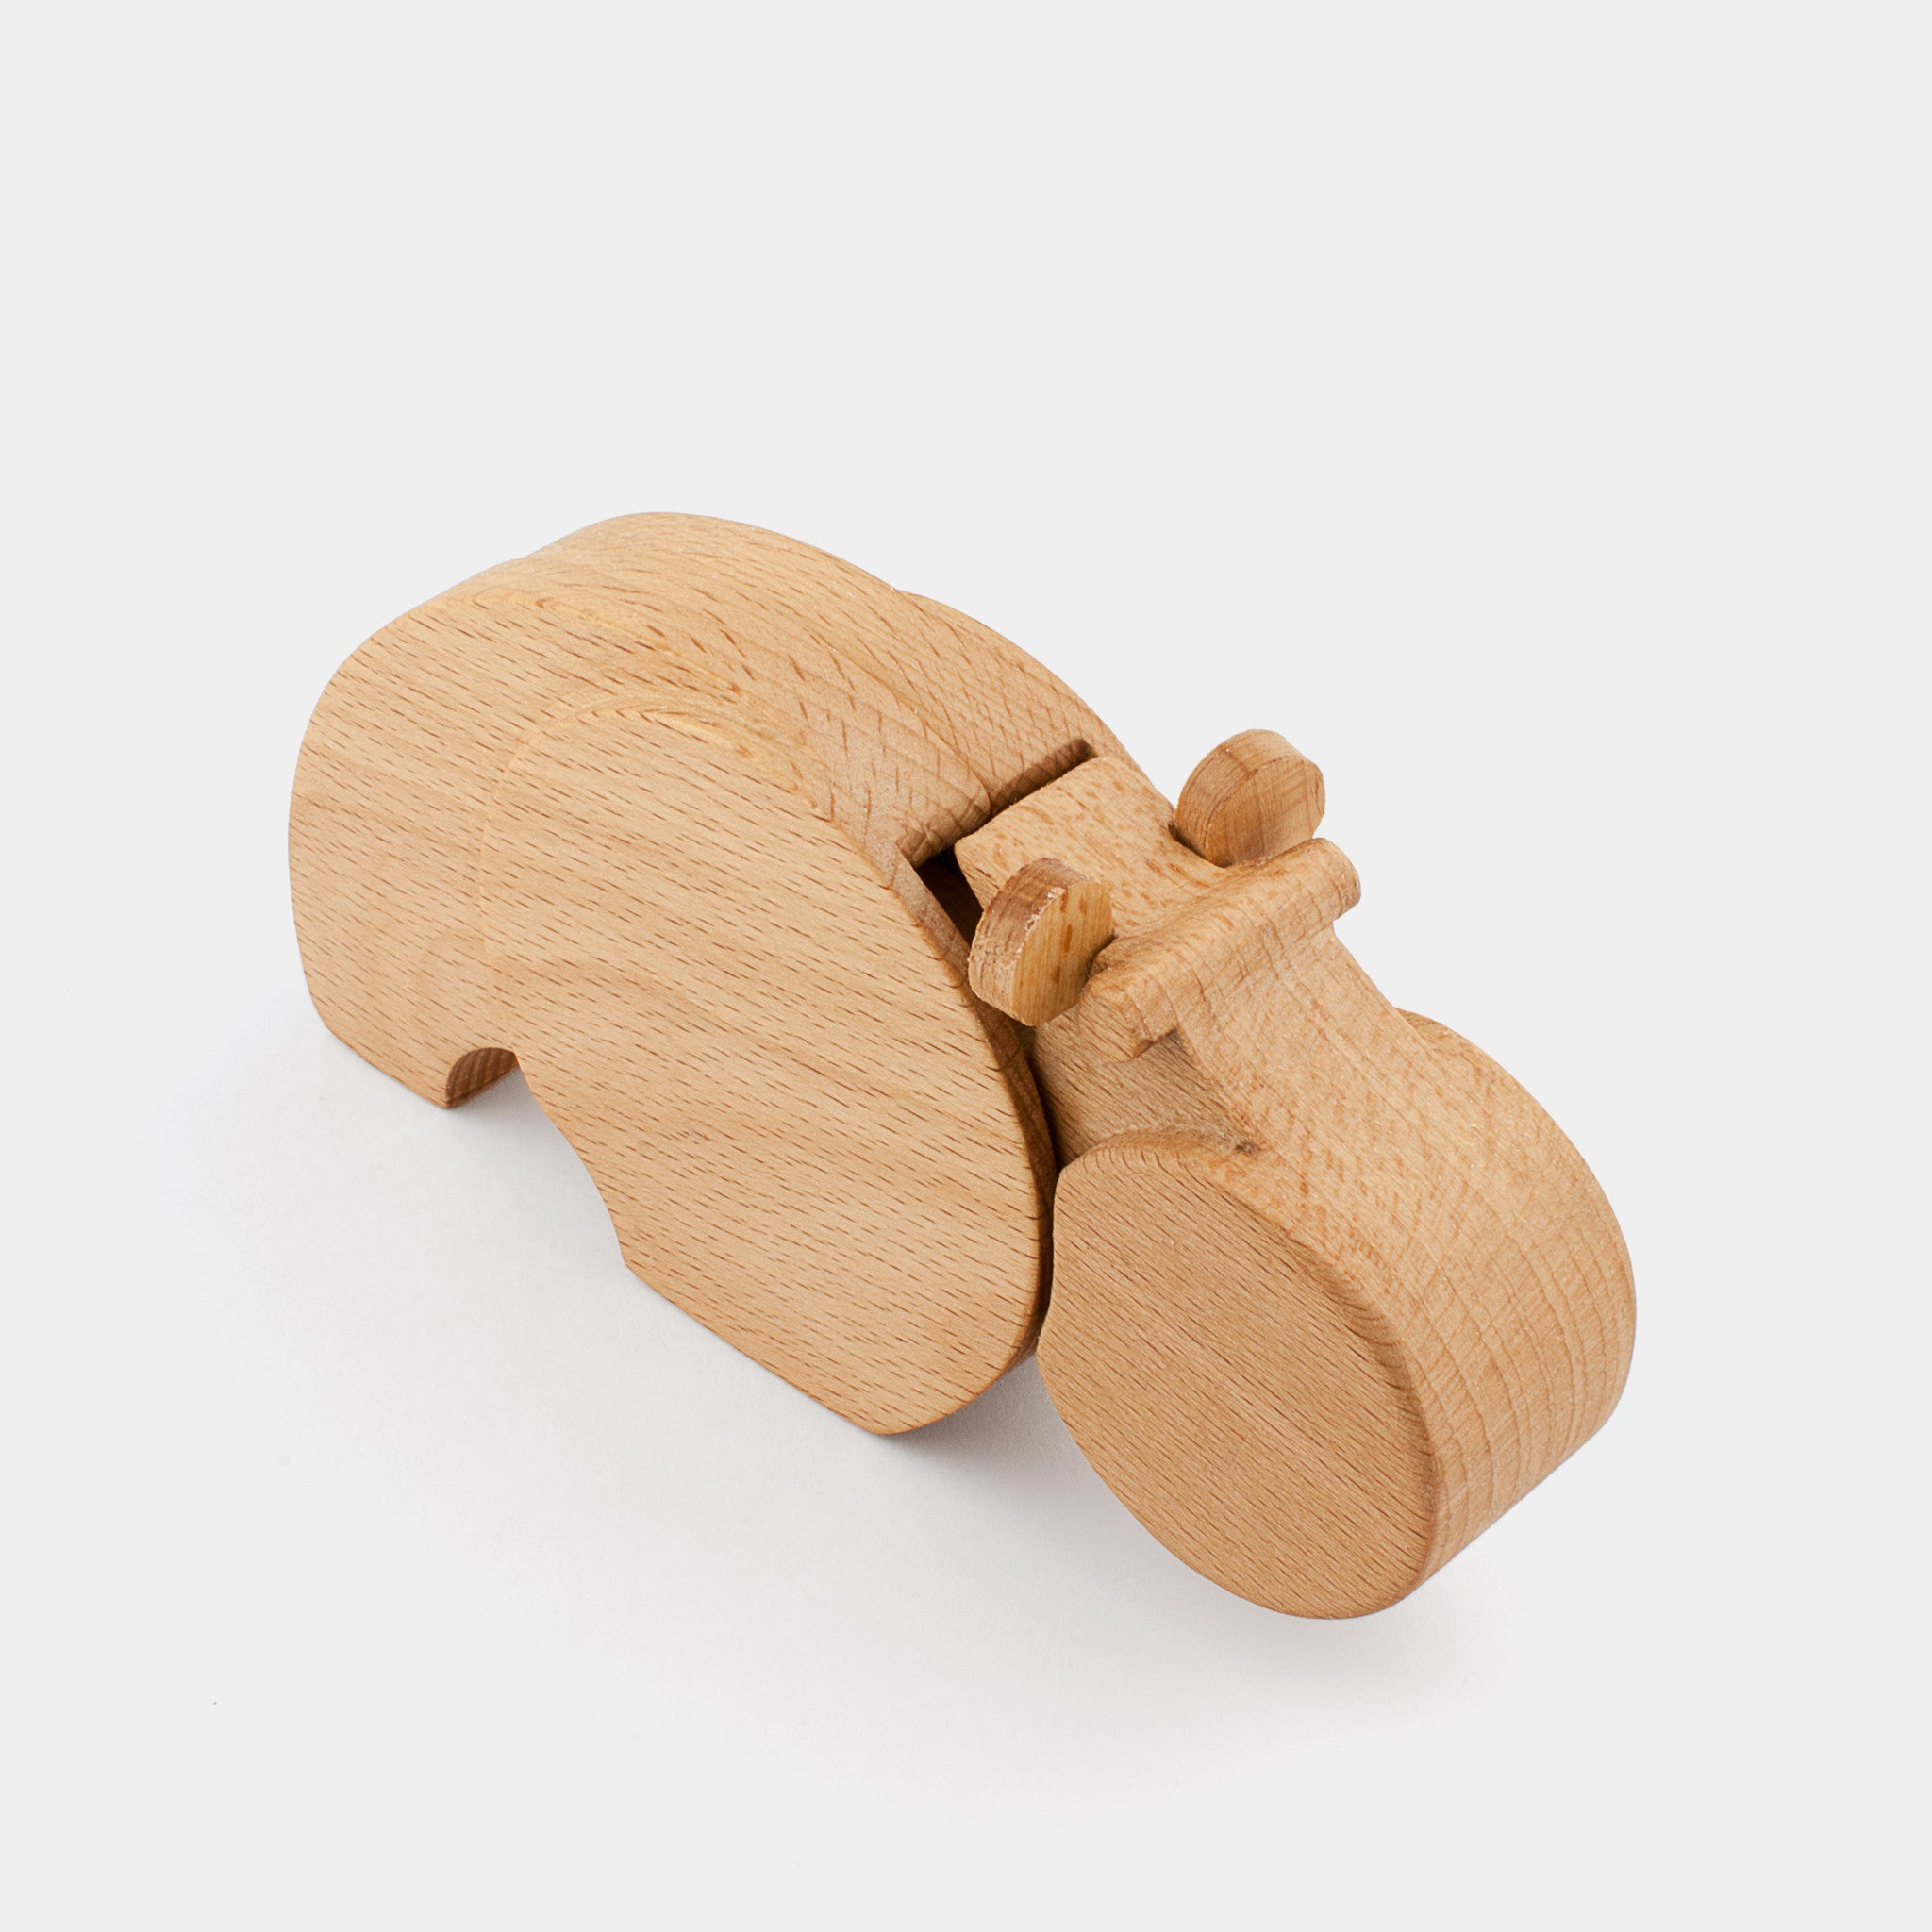 Hipu The Hippopotamus by Wodibow — A great wooden animal puzzle with internal magnets that allow assembly of each puzzle and a bit of movement.